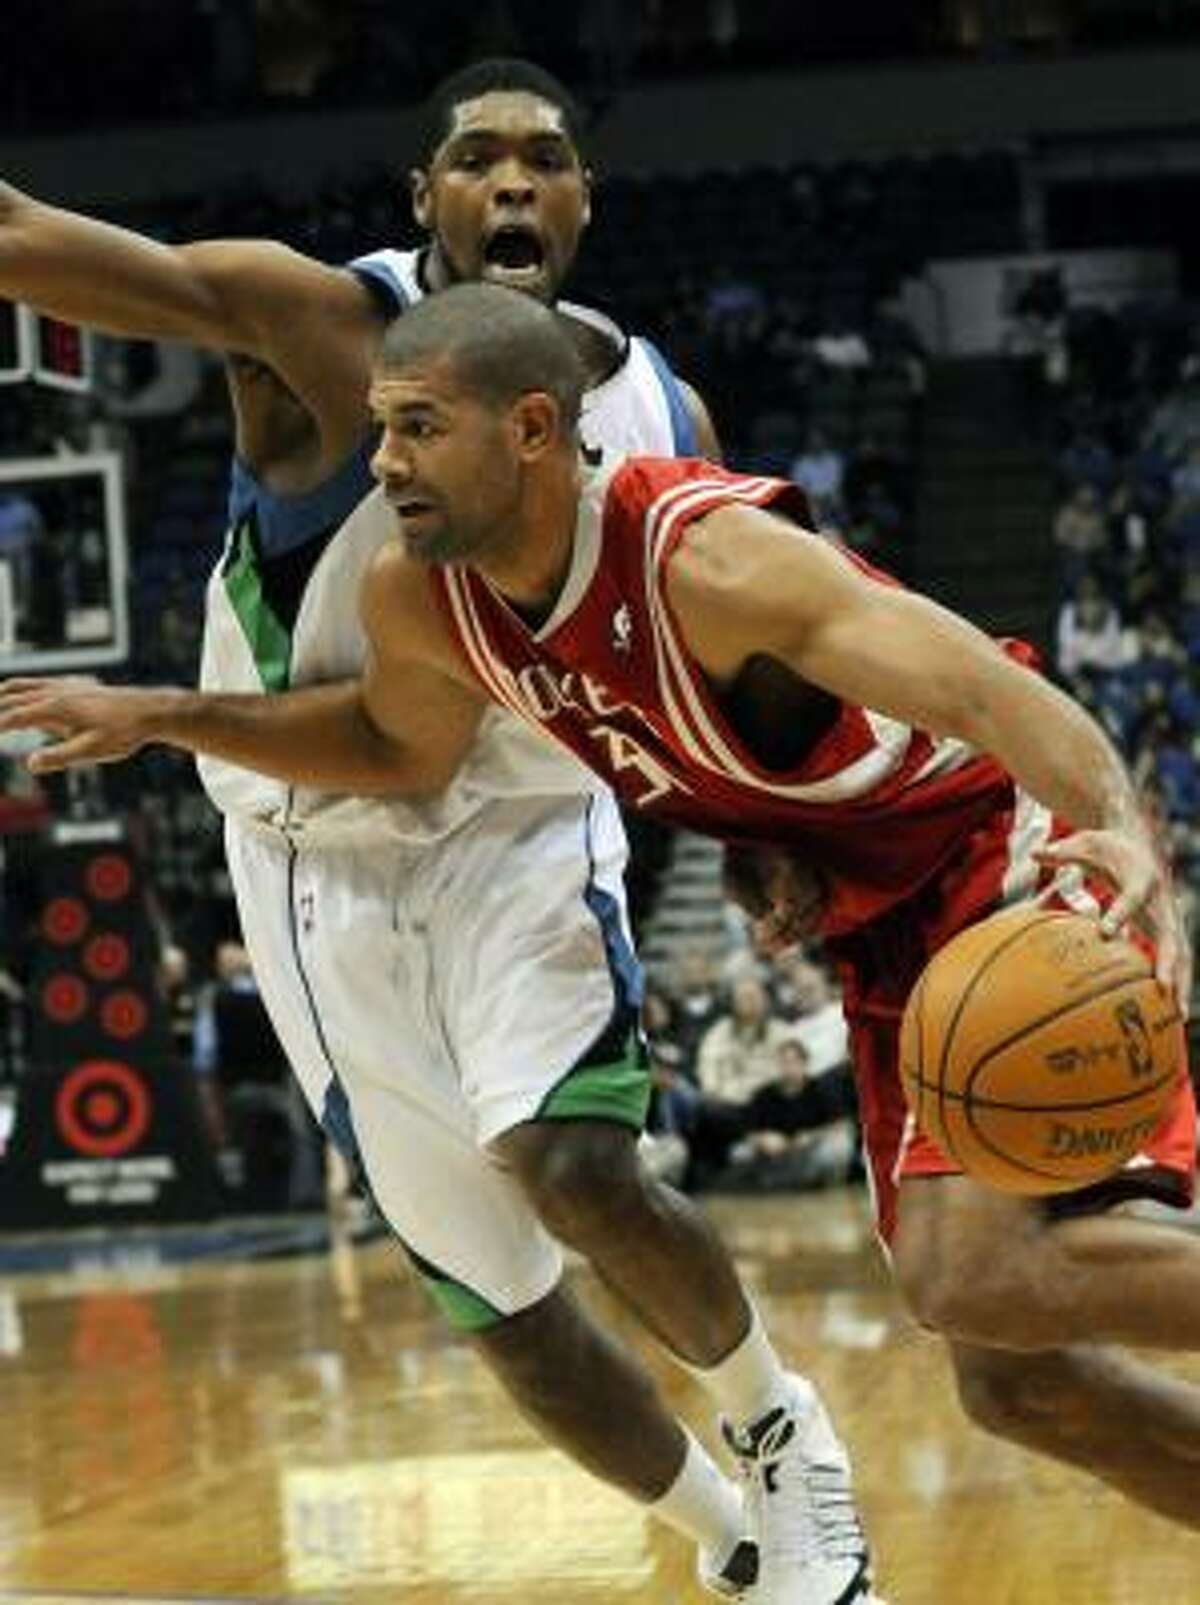 The Timberwolves' Ryan Gomes defends as Rockets forward Shane Battier drives in the first quarter.